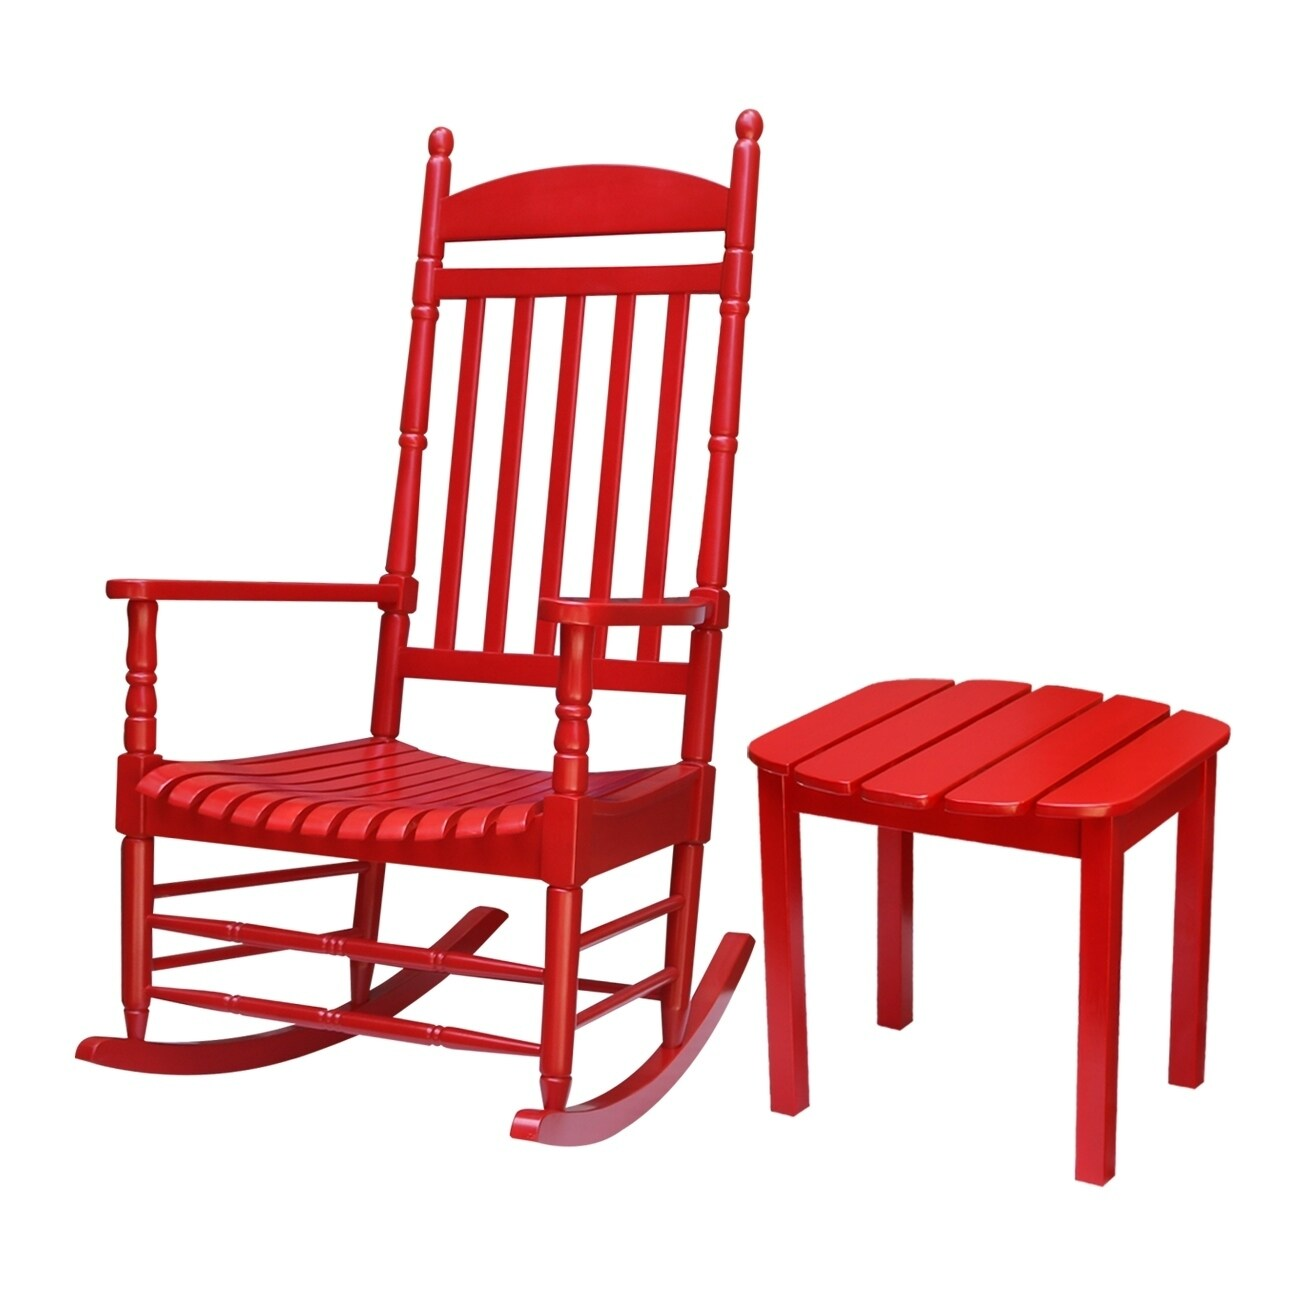 Havenside Home Surfside Porch Rocker and Table 2-piece Set (Red)